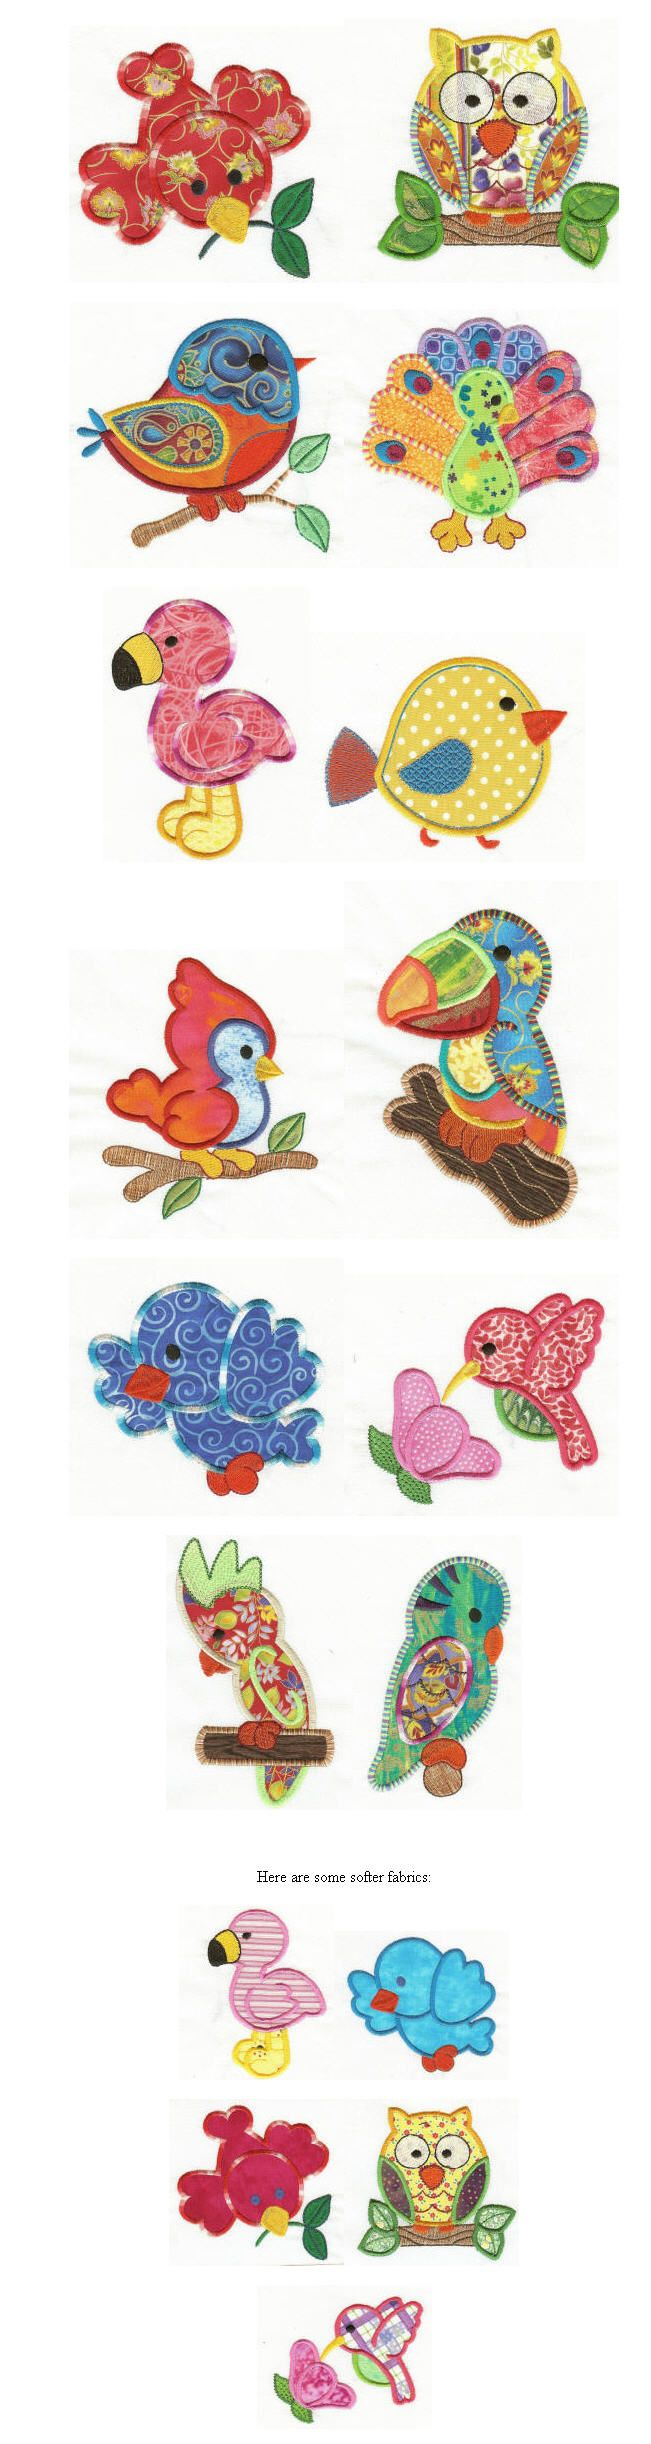 Embroidery | Free machine embroidery designs | Birds of a Feather Applique